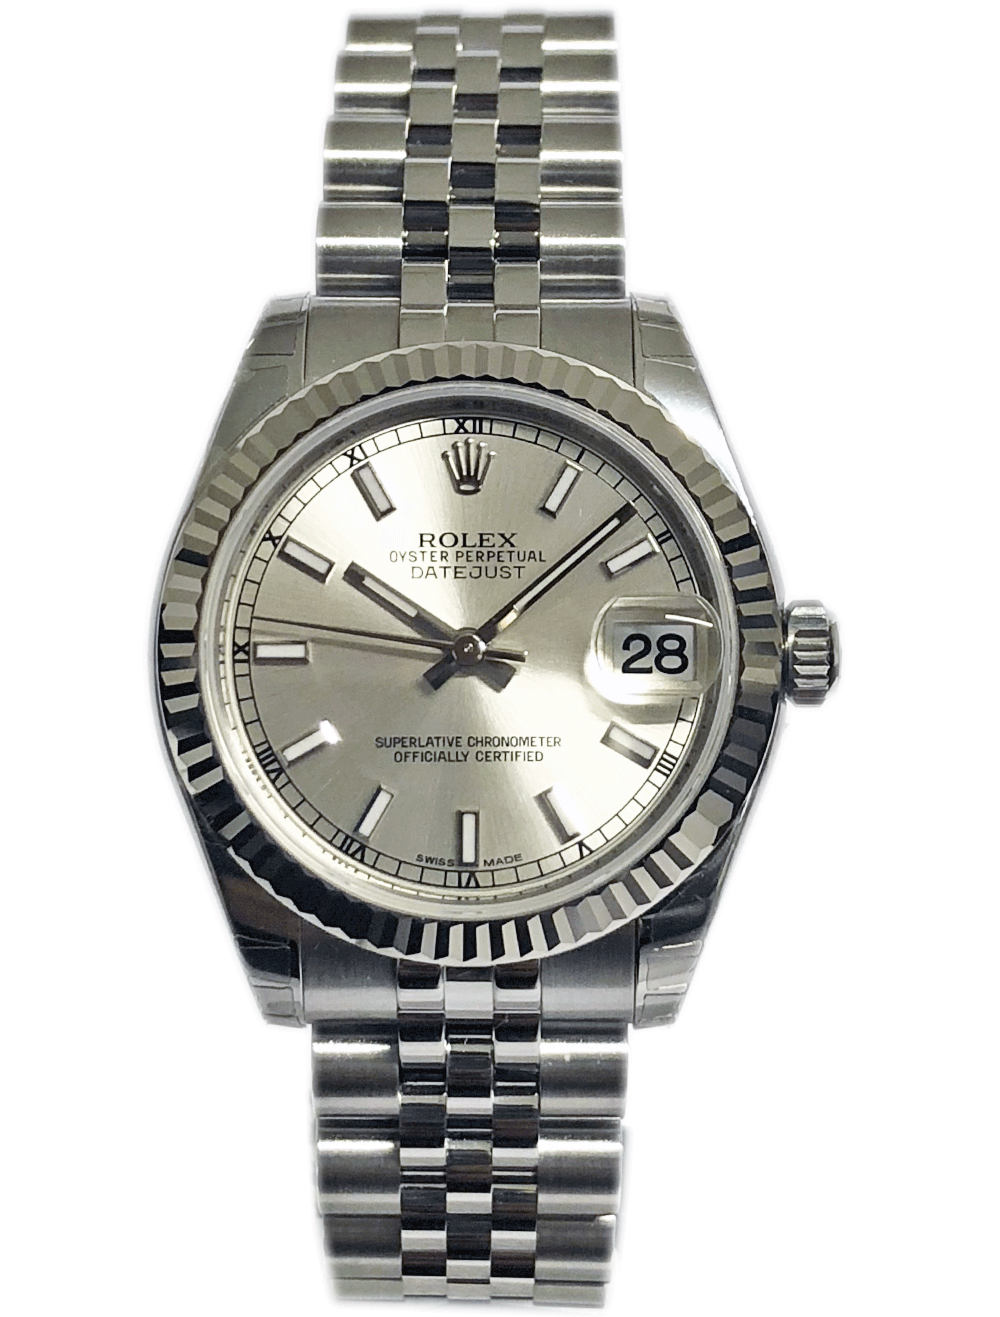 4d24b9e5ed14 ROLEX OYSTER PERPETUAL DATEJUST 31 MM 178274-2 - New Watches ...